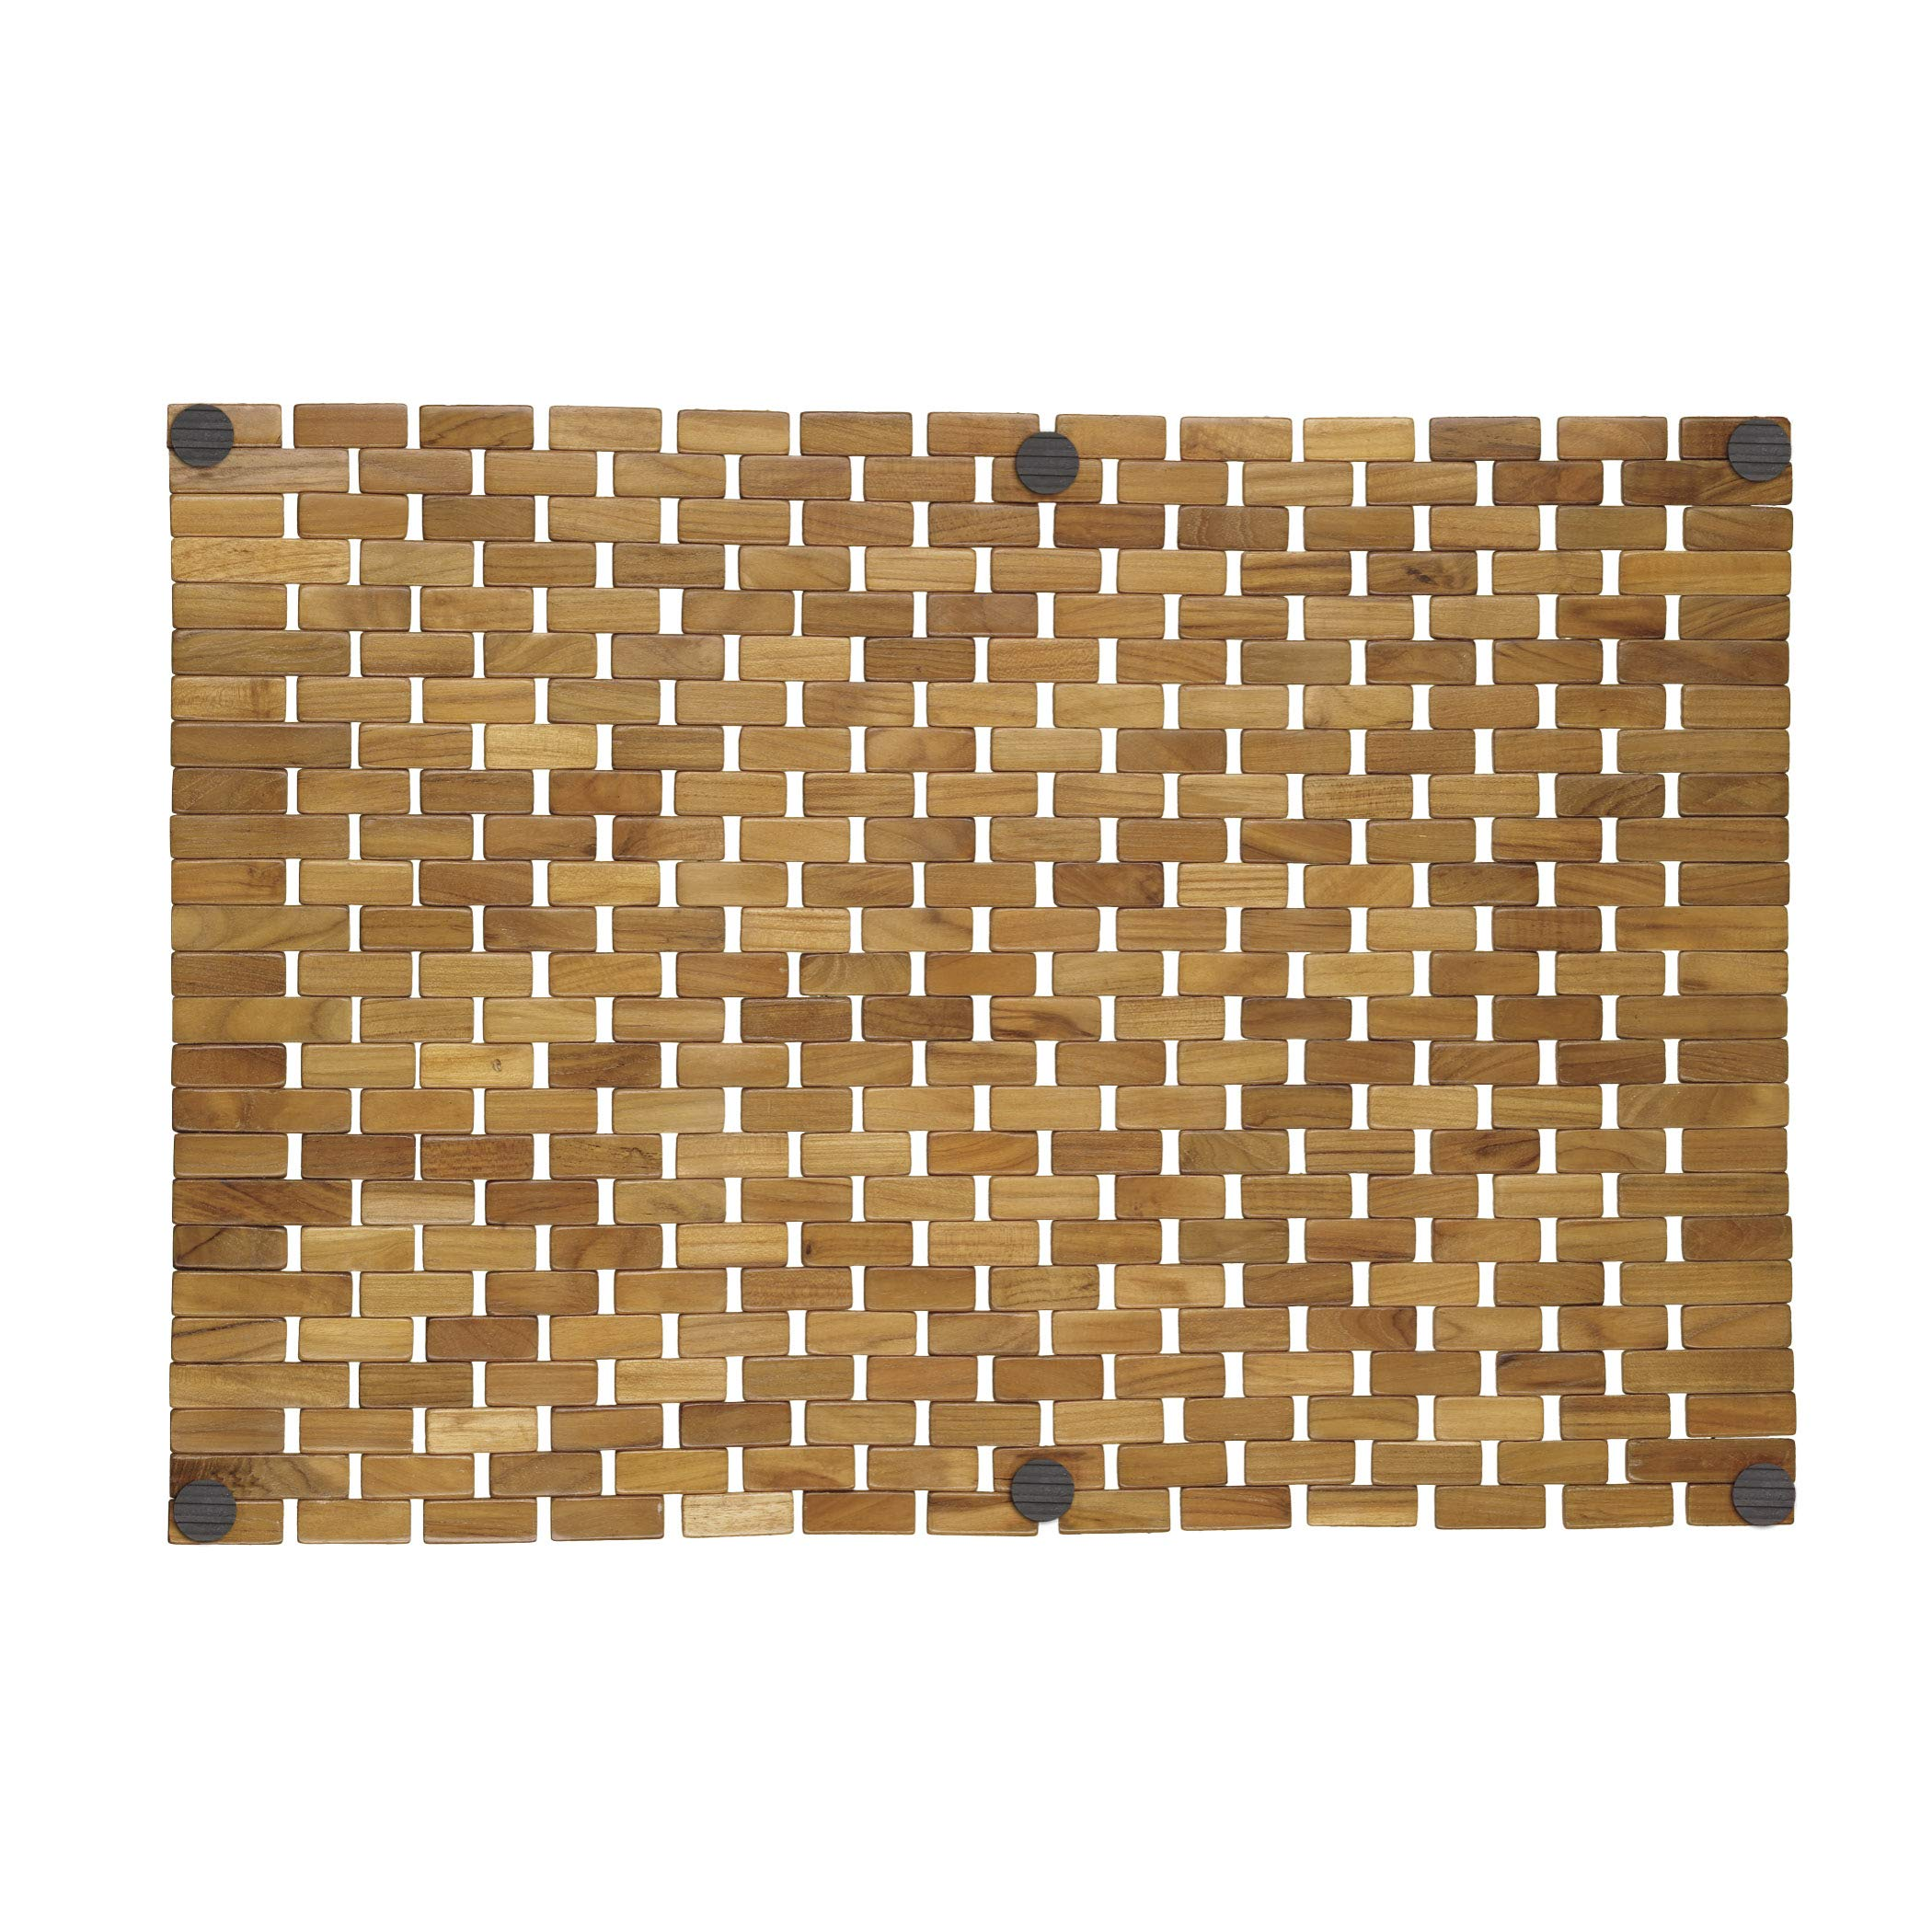 Conair Home Teak Spa Mat, Roll-Up or Lay Flat